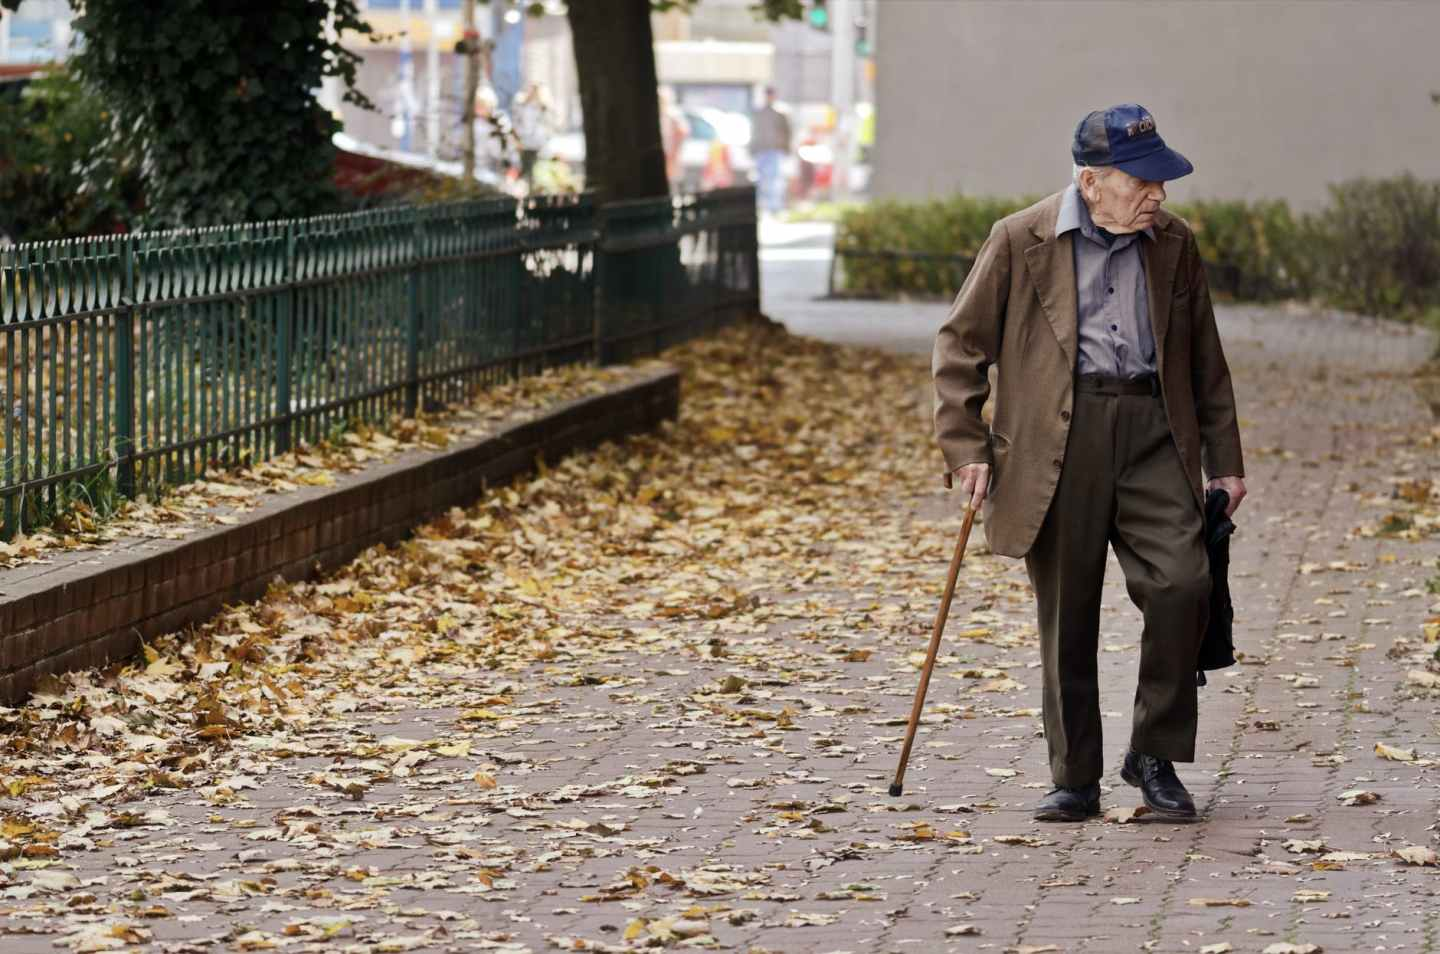 Elderly Man With Cane - Seniors Recover From Coronavirus